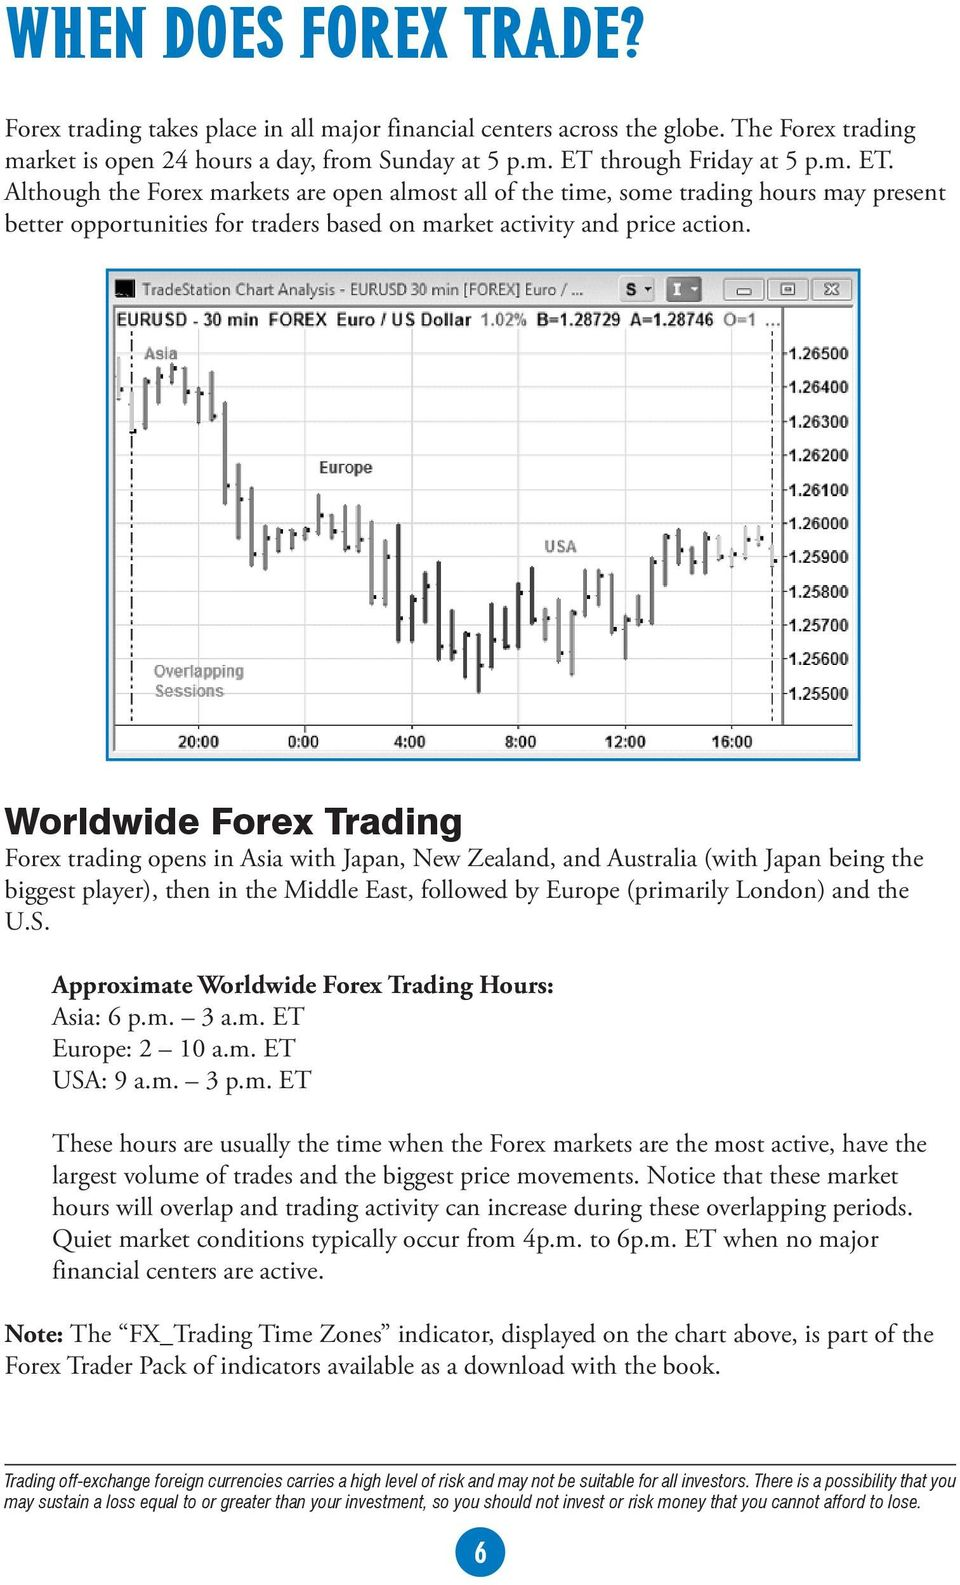 Worldwide Forex Trading Forex trading opens in Asia with Japan, New Zealand, and Australia (with Japan being the biggest player), then in the Middle East, followed by Europe (primarily London) and